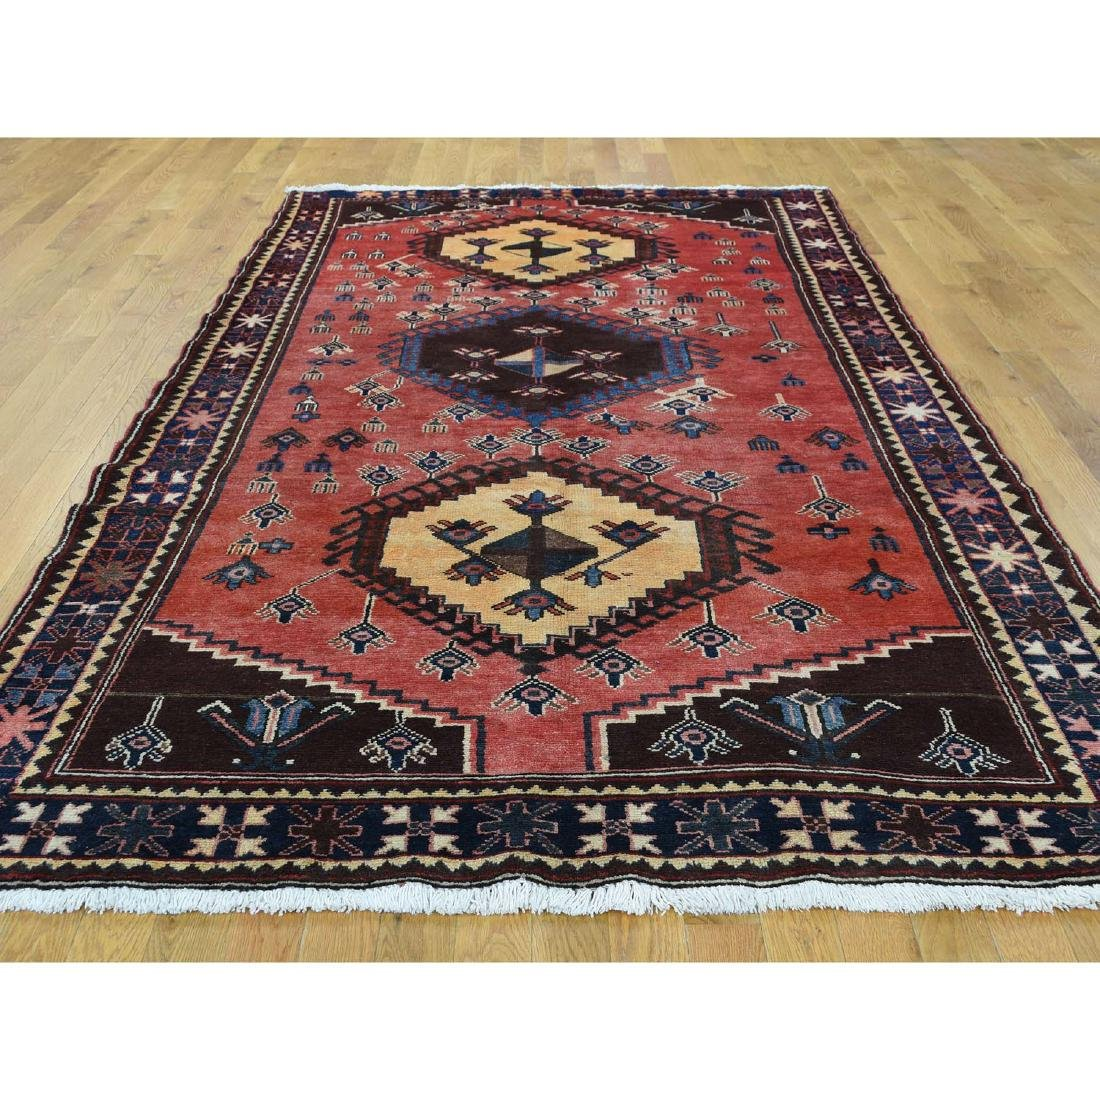 Semi Antique Persian Afshar Full Pile Mint Condition - 2